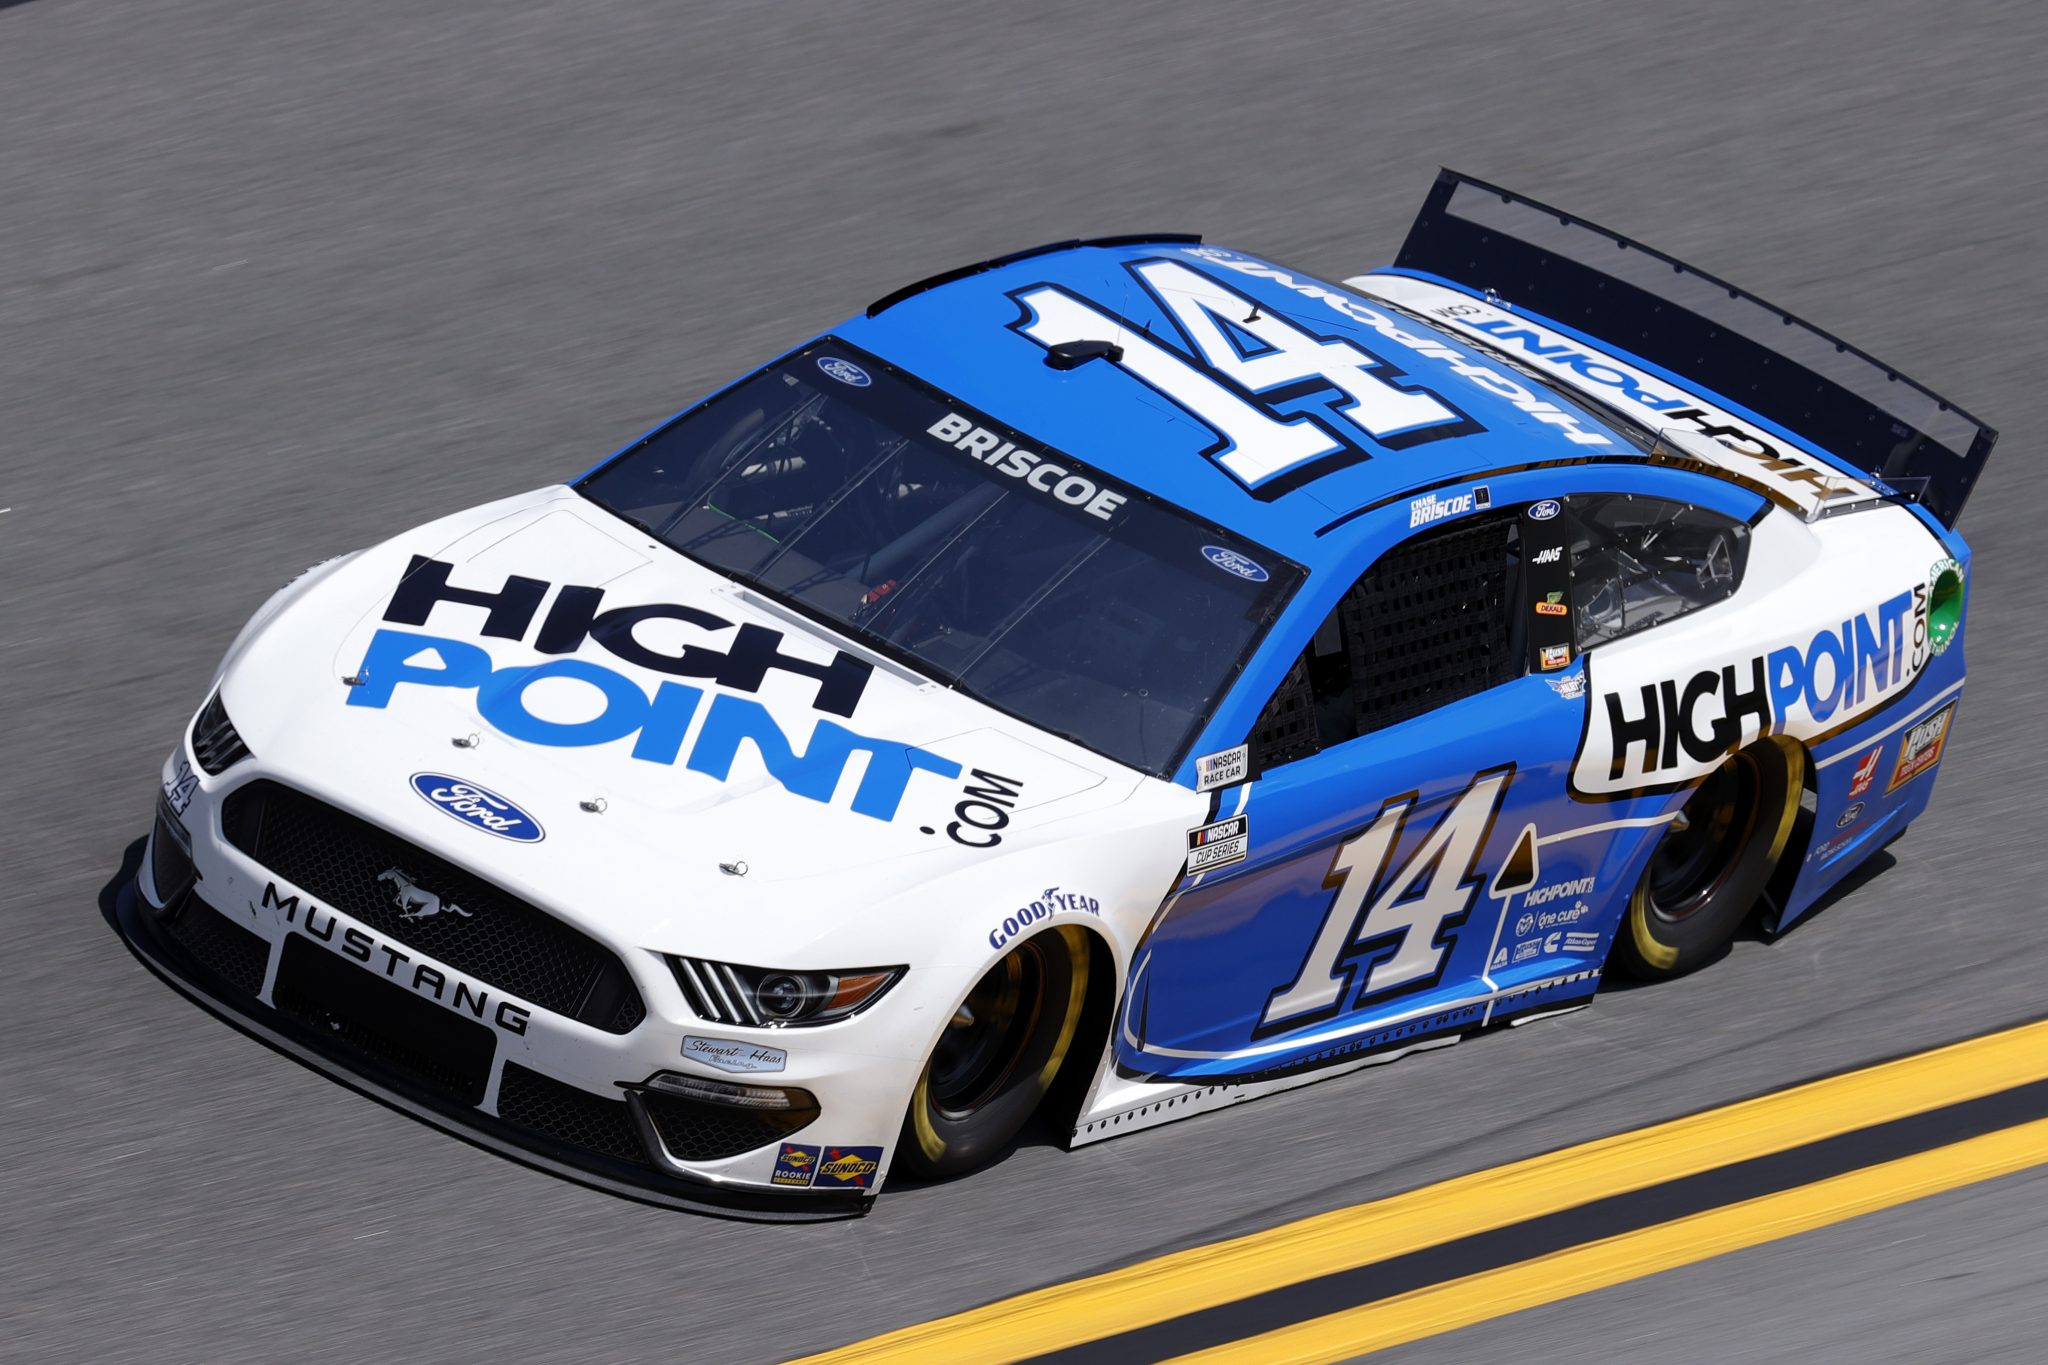 DAYTONA BEACH, FLORIDA - FEBRUARY 10: Chase Briscoe, driver of the #14 HighPoint.com Ford, drives during practice for the NASCAR Cup Series 63rd Annual Daytona 500 at Daytona International Speedway on February 10, 2021 in Daytona Beach, Florida. (Photo by Jared C. Tilton/Getty Images) | Getty Images